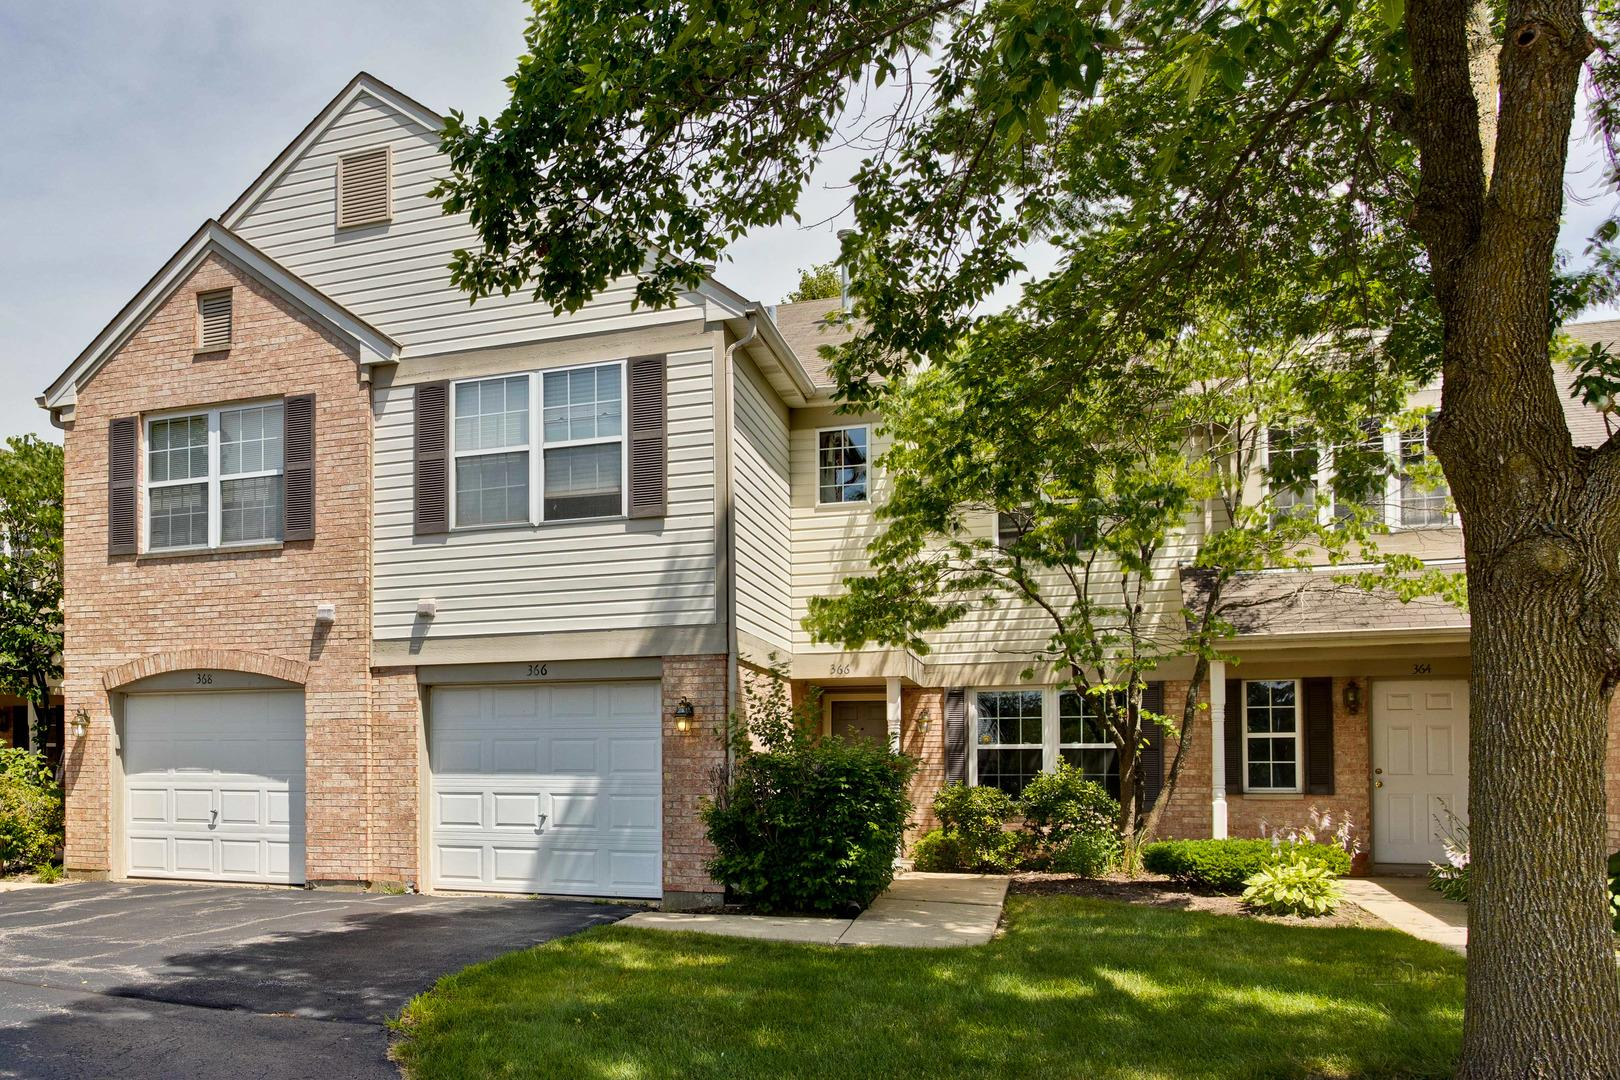 366 Crystal Ridge Drive #B, Crystal Lake, IL 60012 - #: 10784440